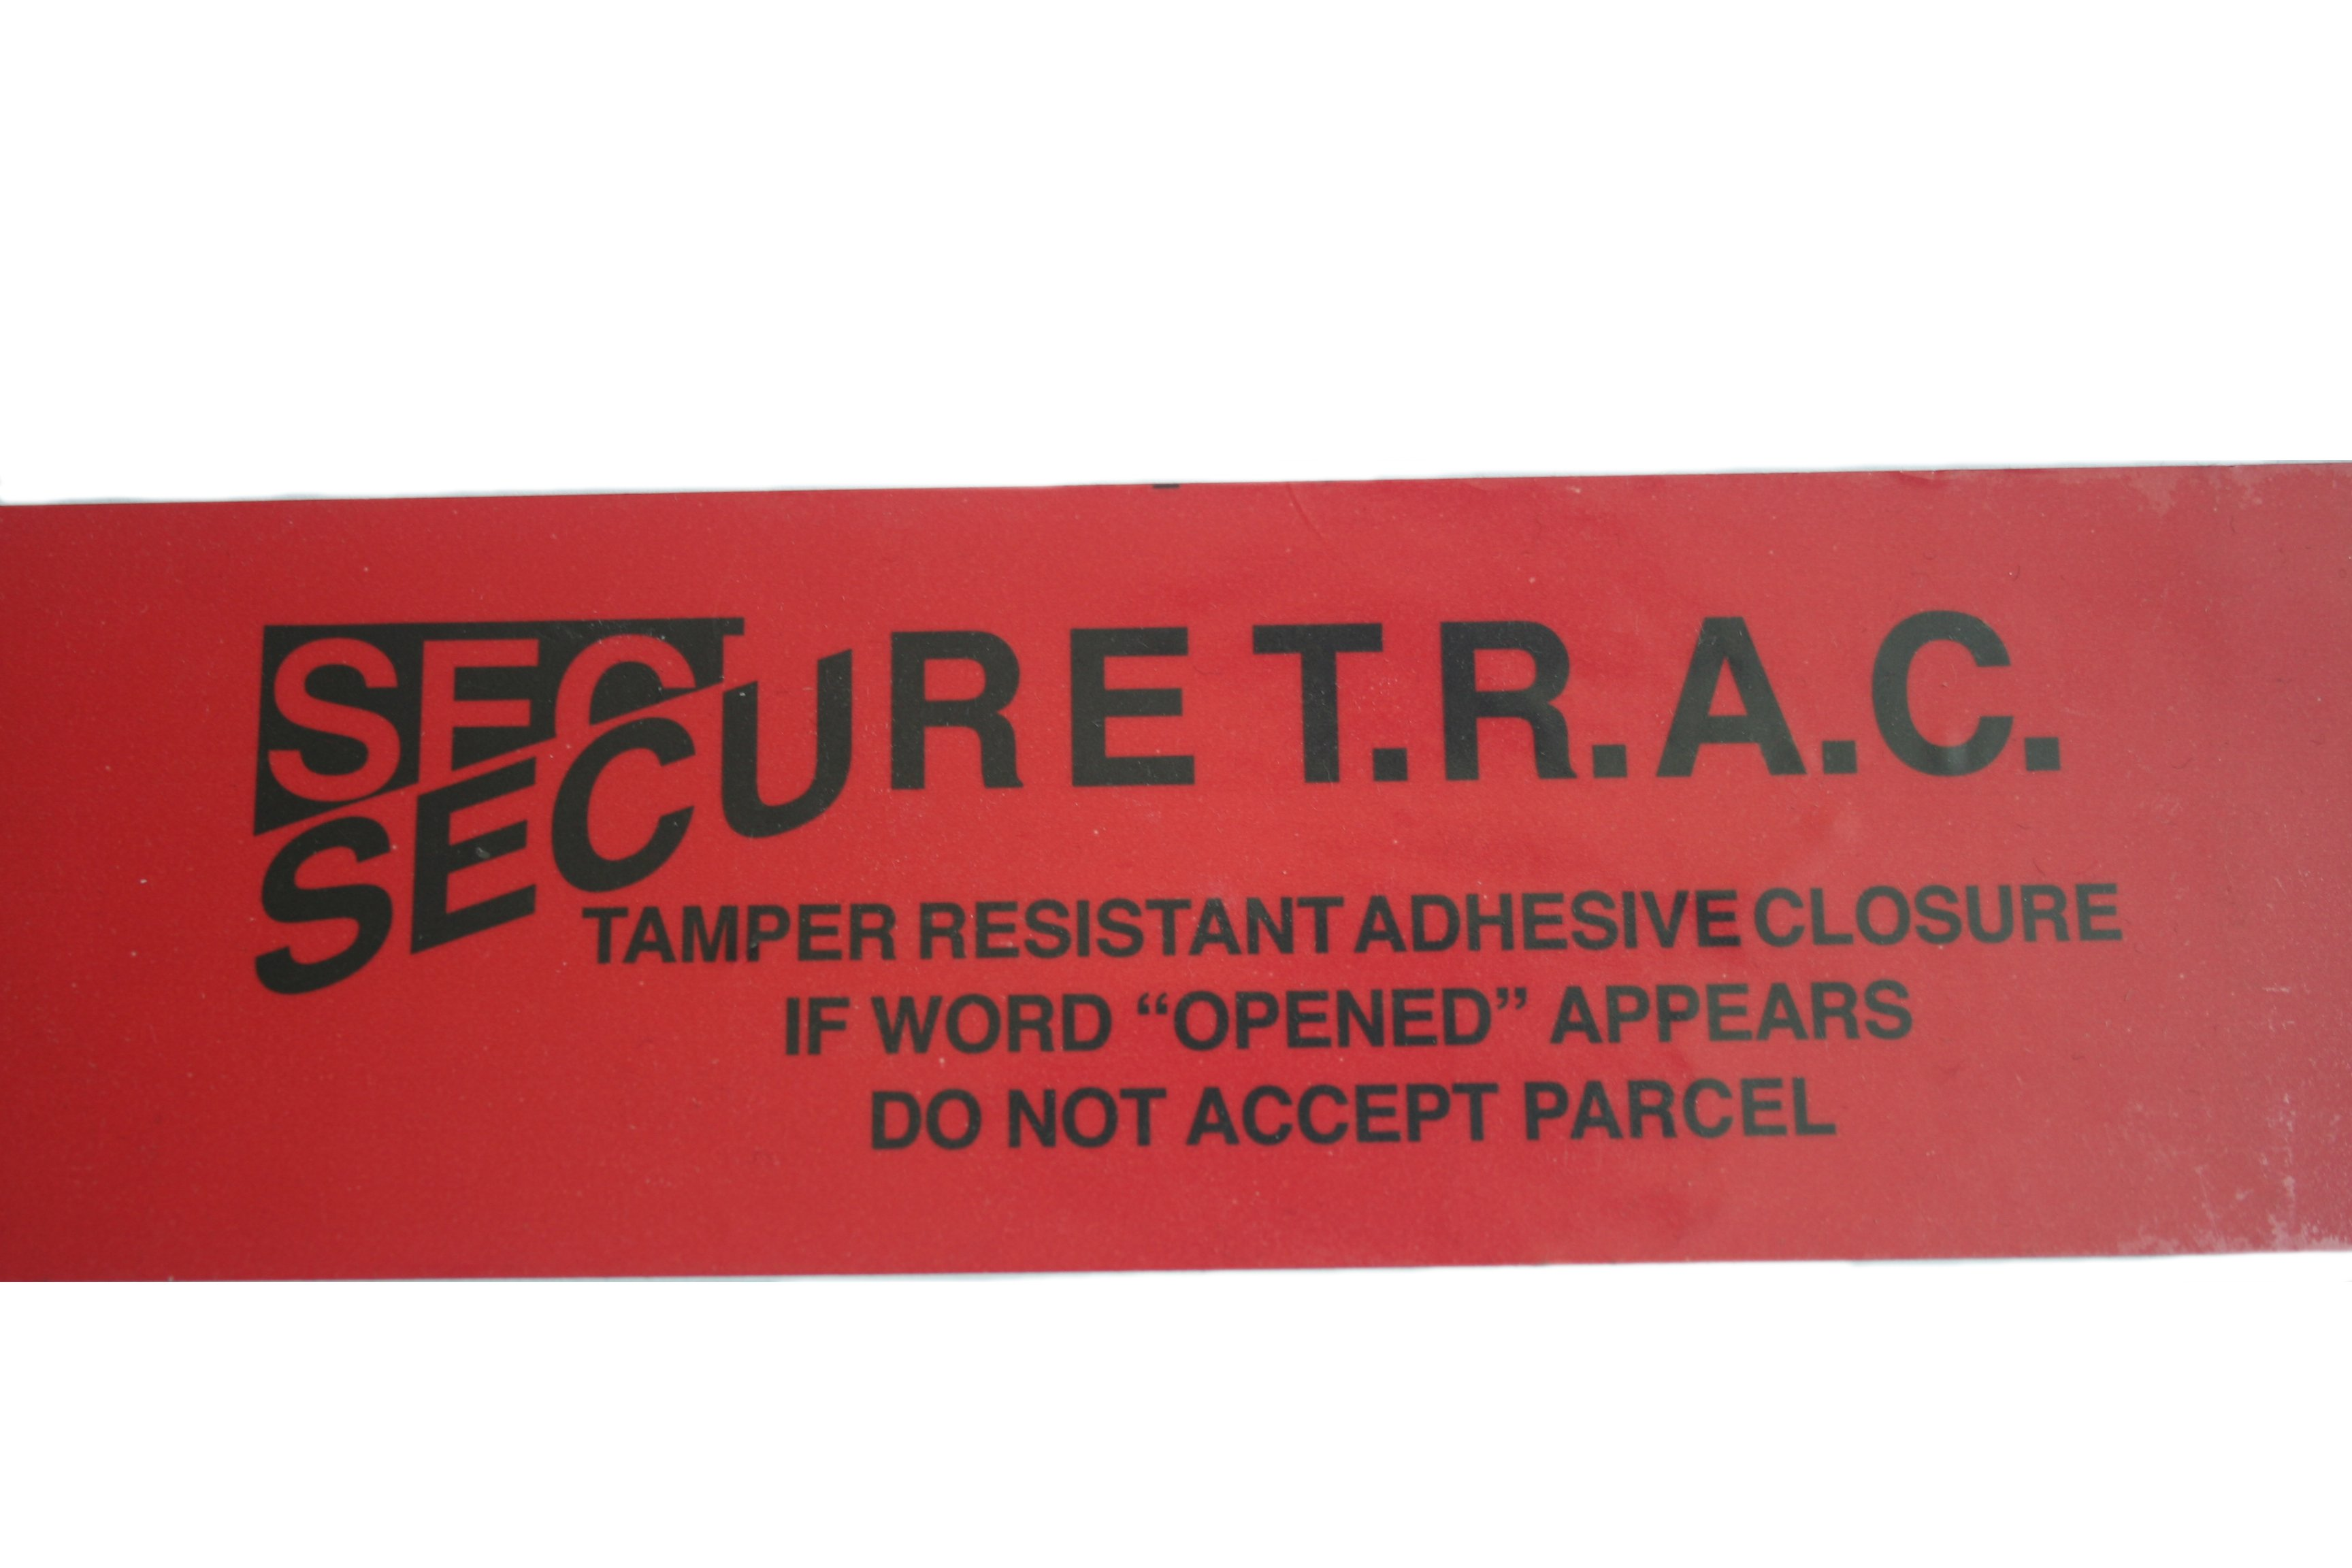 Security tape SECURE TRAC